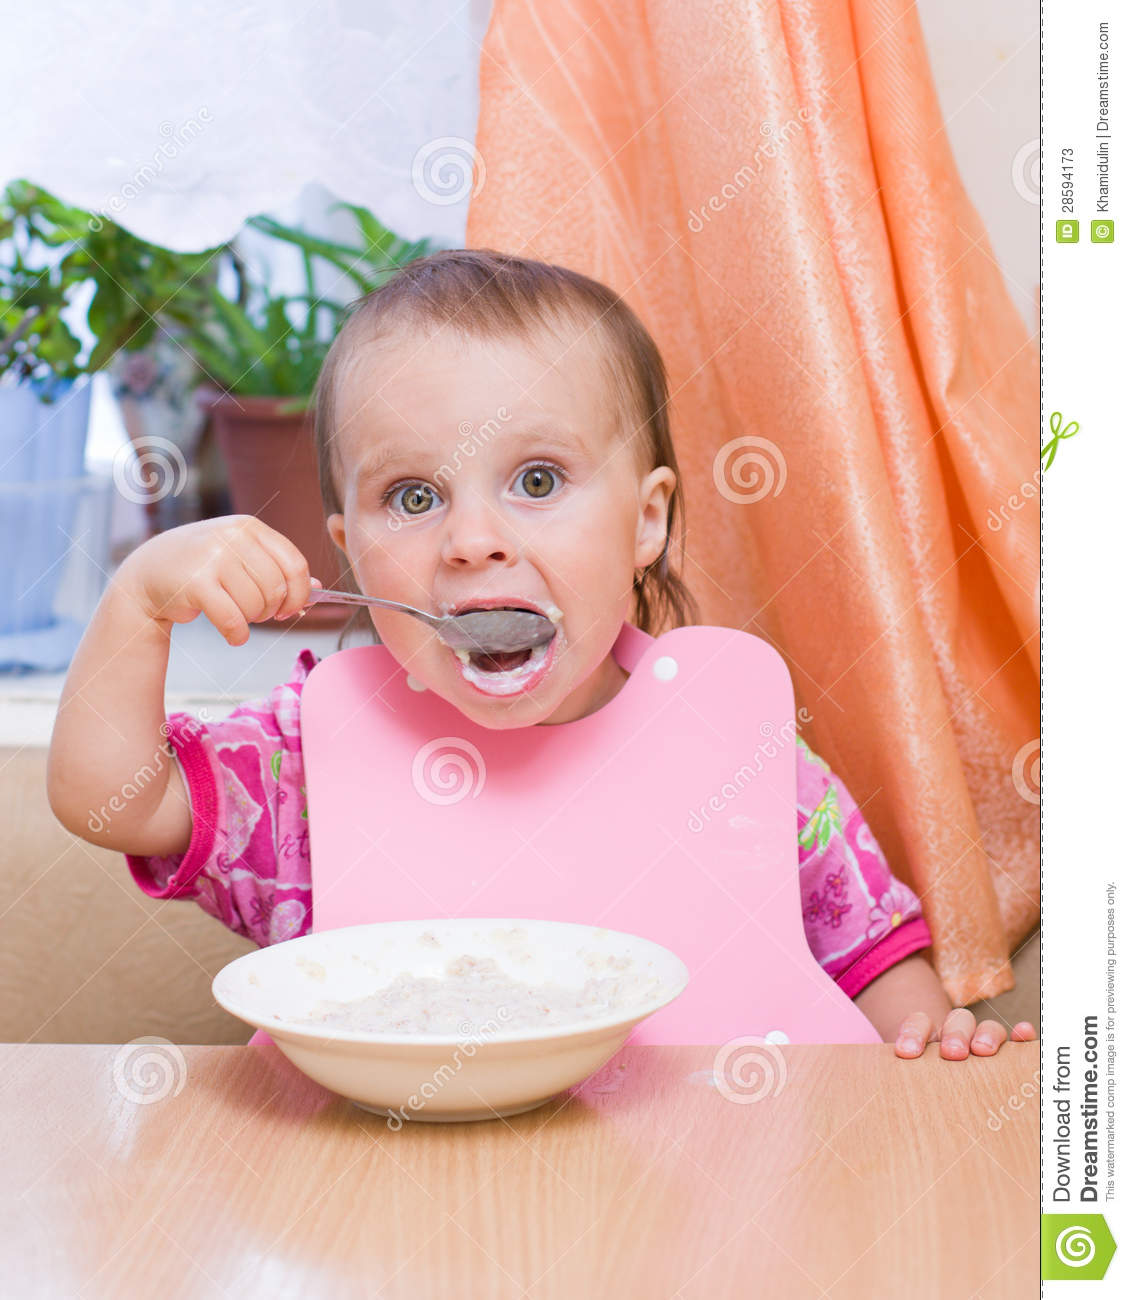 Little Kid Eating Cereal Stock Photos - Image: 28594173